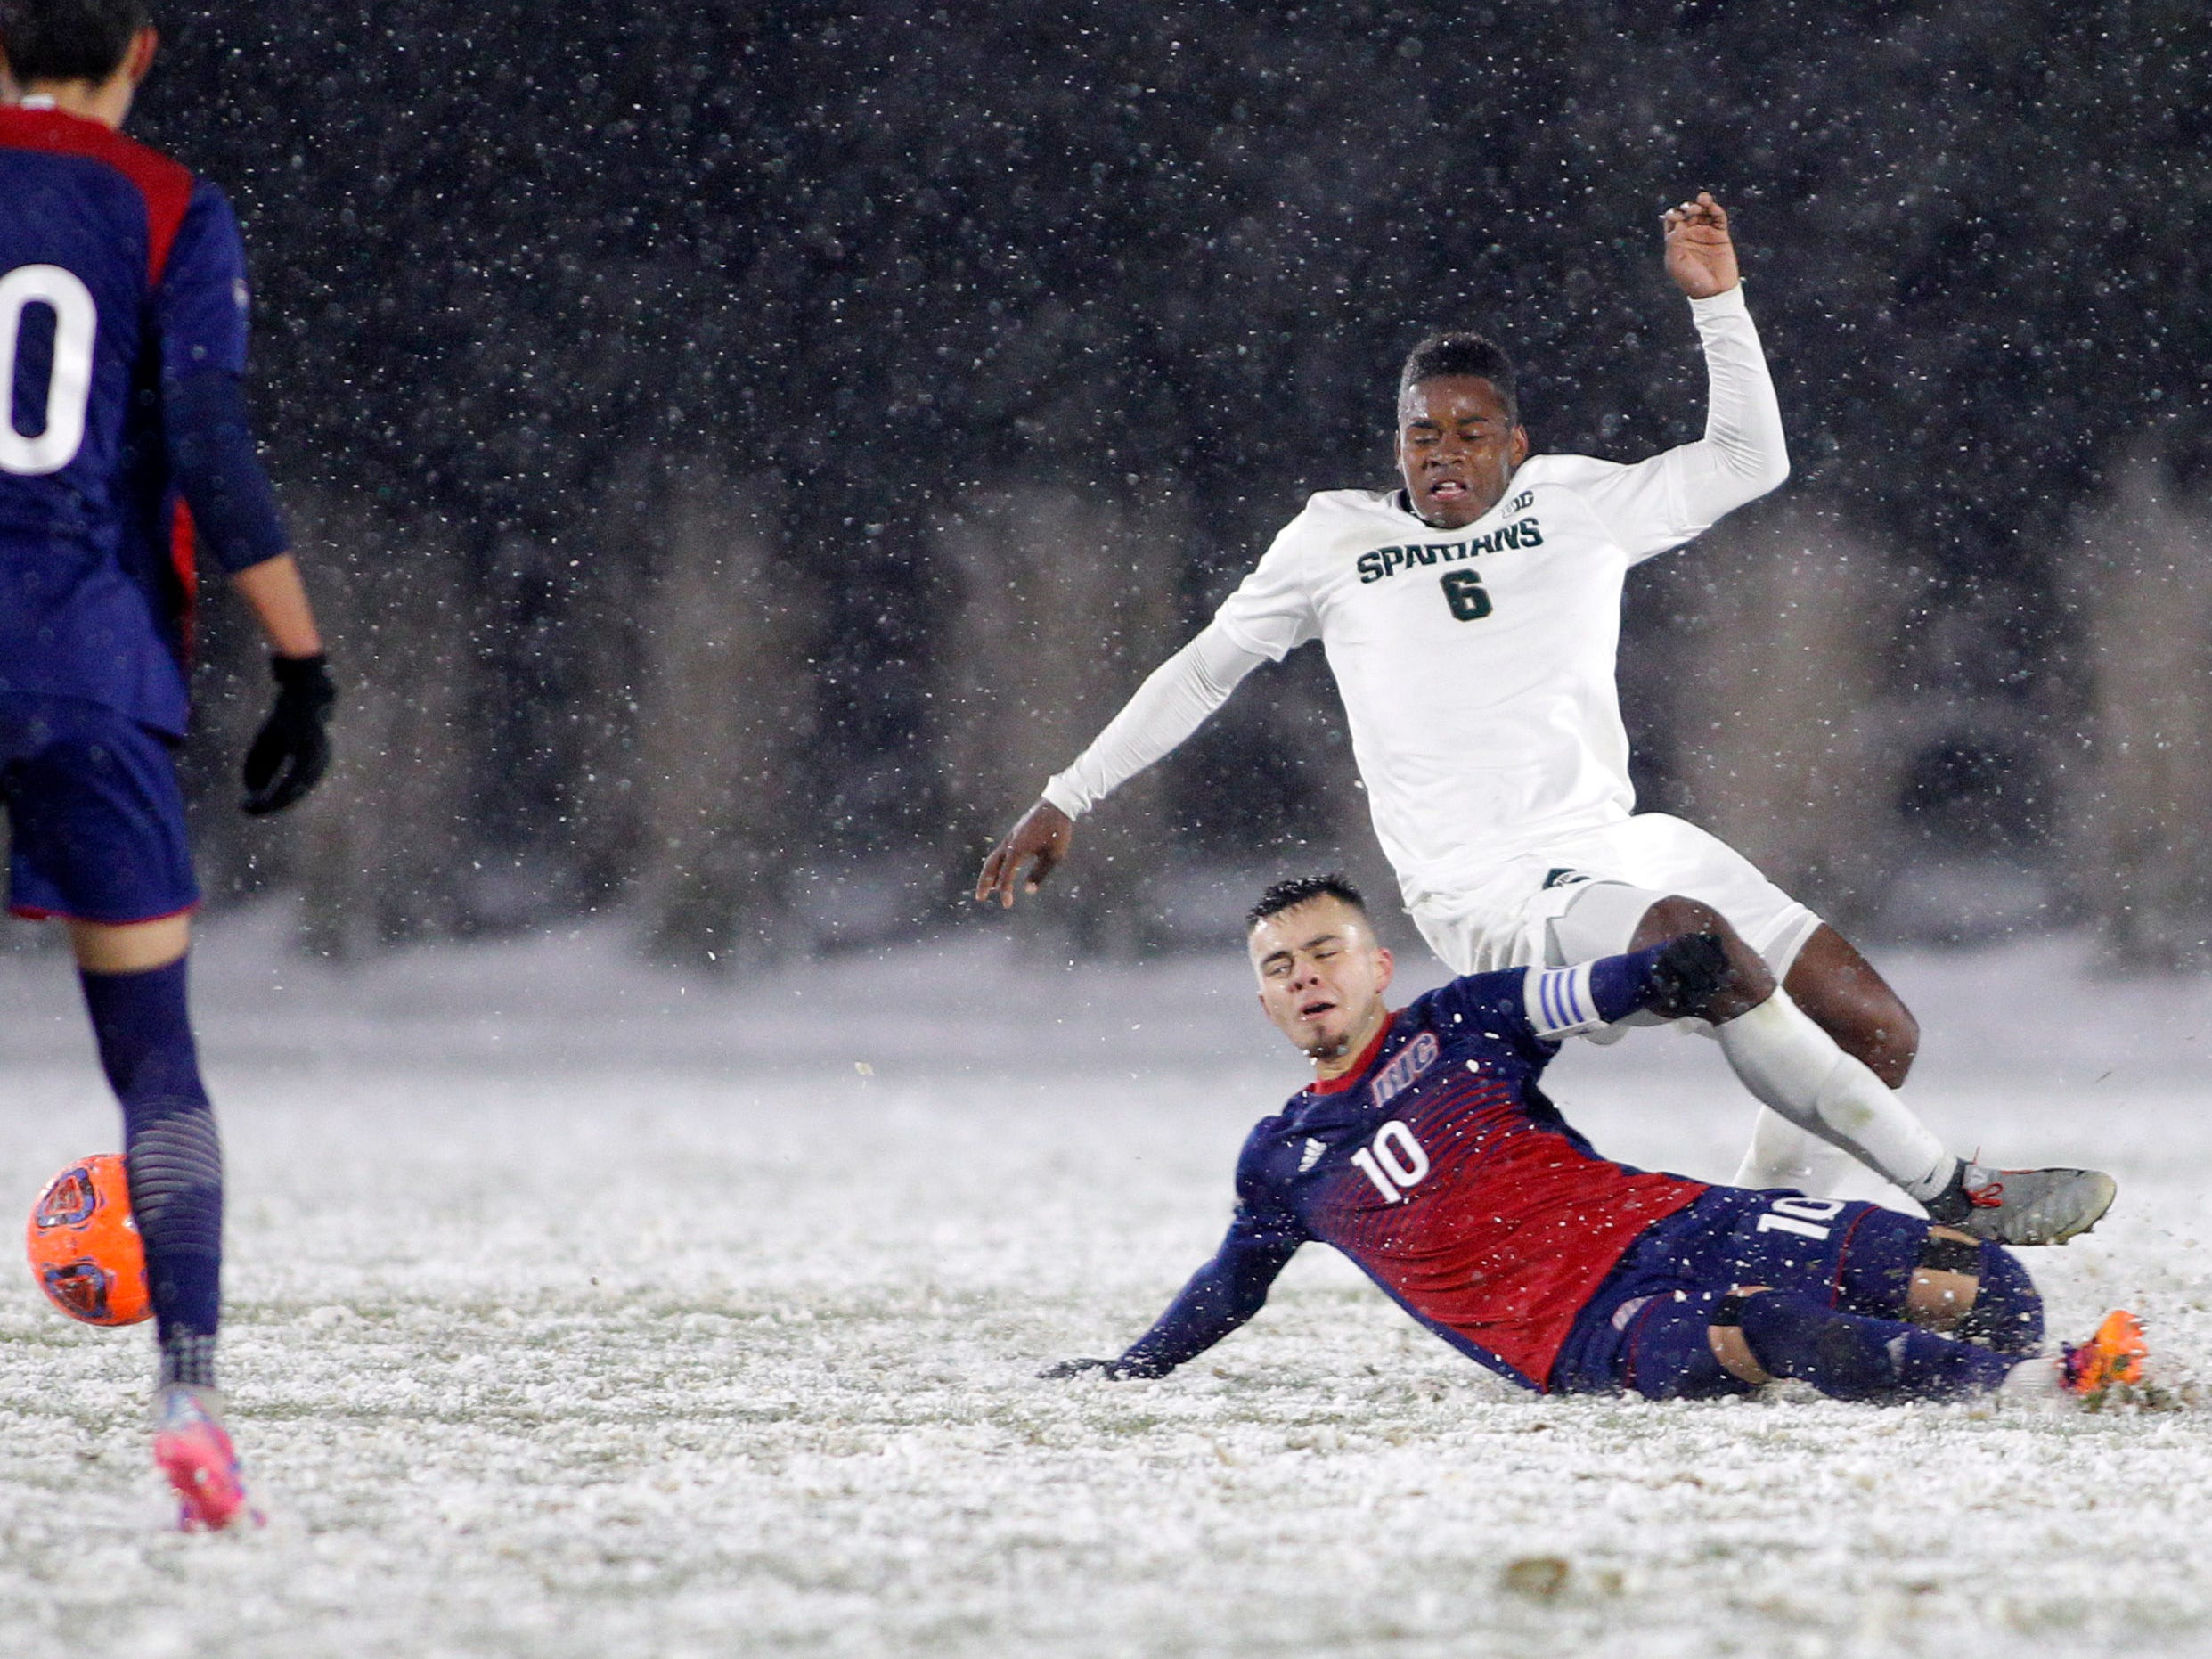 Michigan State's DeJuan Jones (6) is undercut by Illinois-Chicago's Nestor Garcia during their NCAA first round game, Thursday, Nov. 15, 2018, at DeMartin Stadium in East Lansing, Mich. MSU won 2-0.